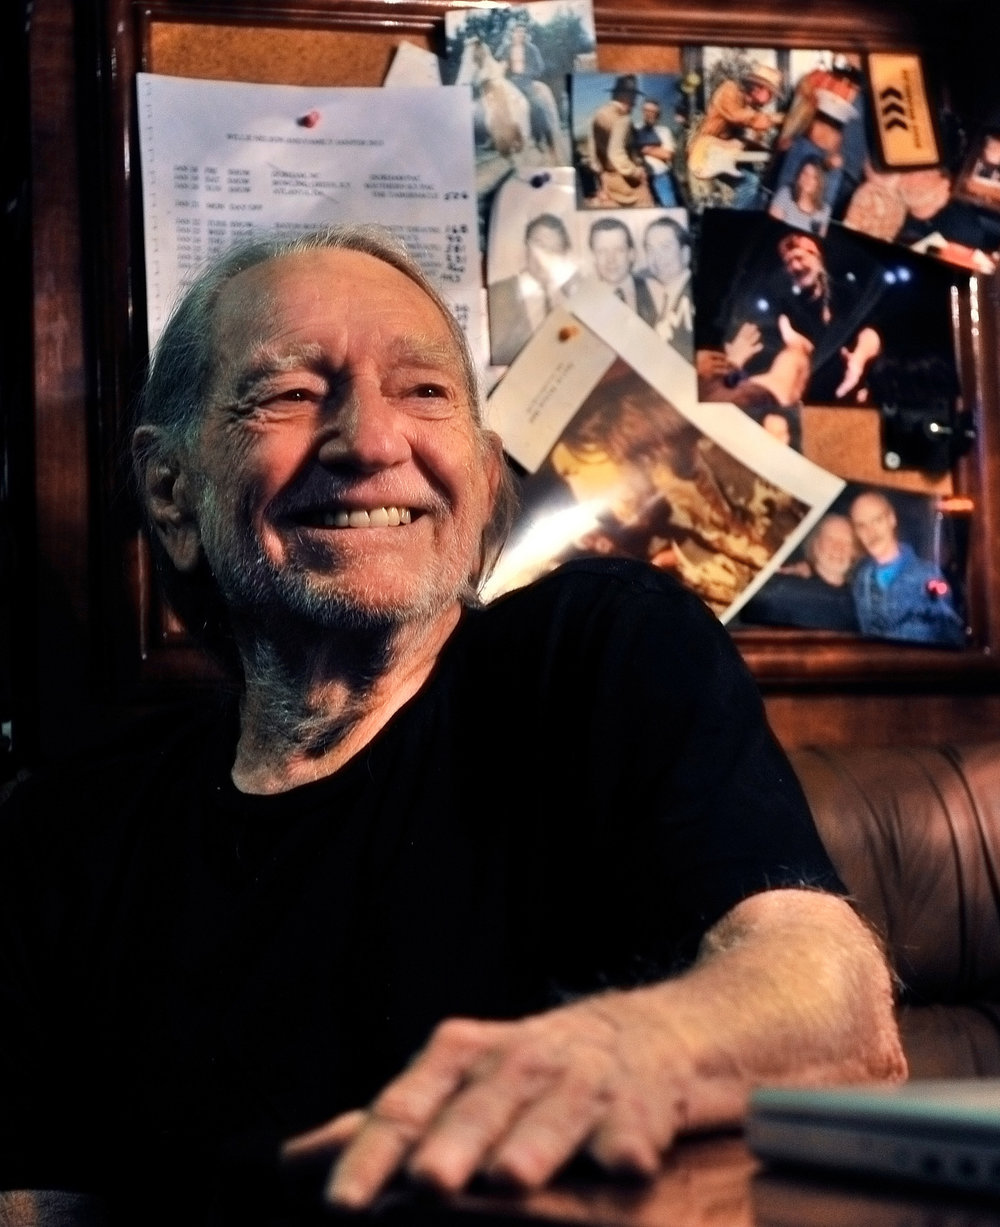 Willie Nelson on his tour bus after performing with Kris Kristofferson at the legendary Bluebird Cafe January 27, 2013 in Nashville, TN.